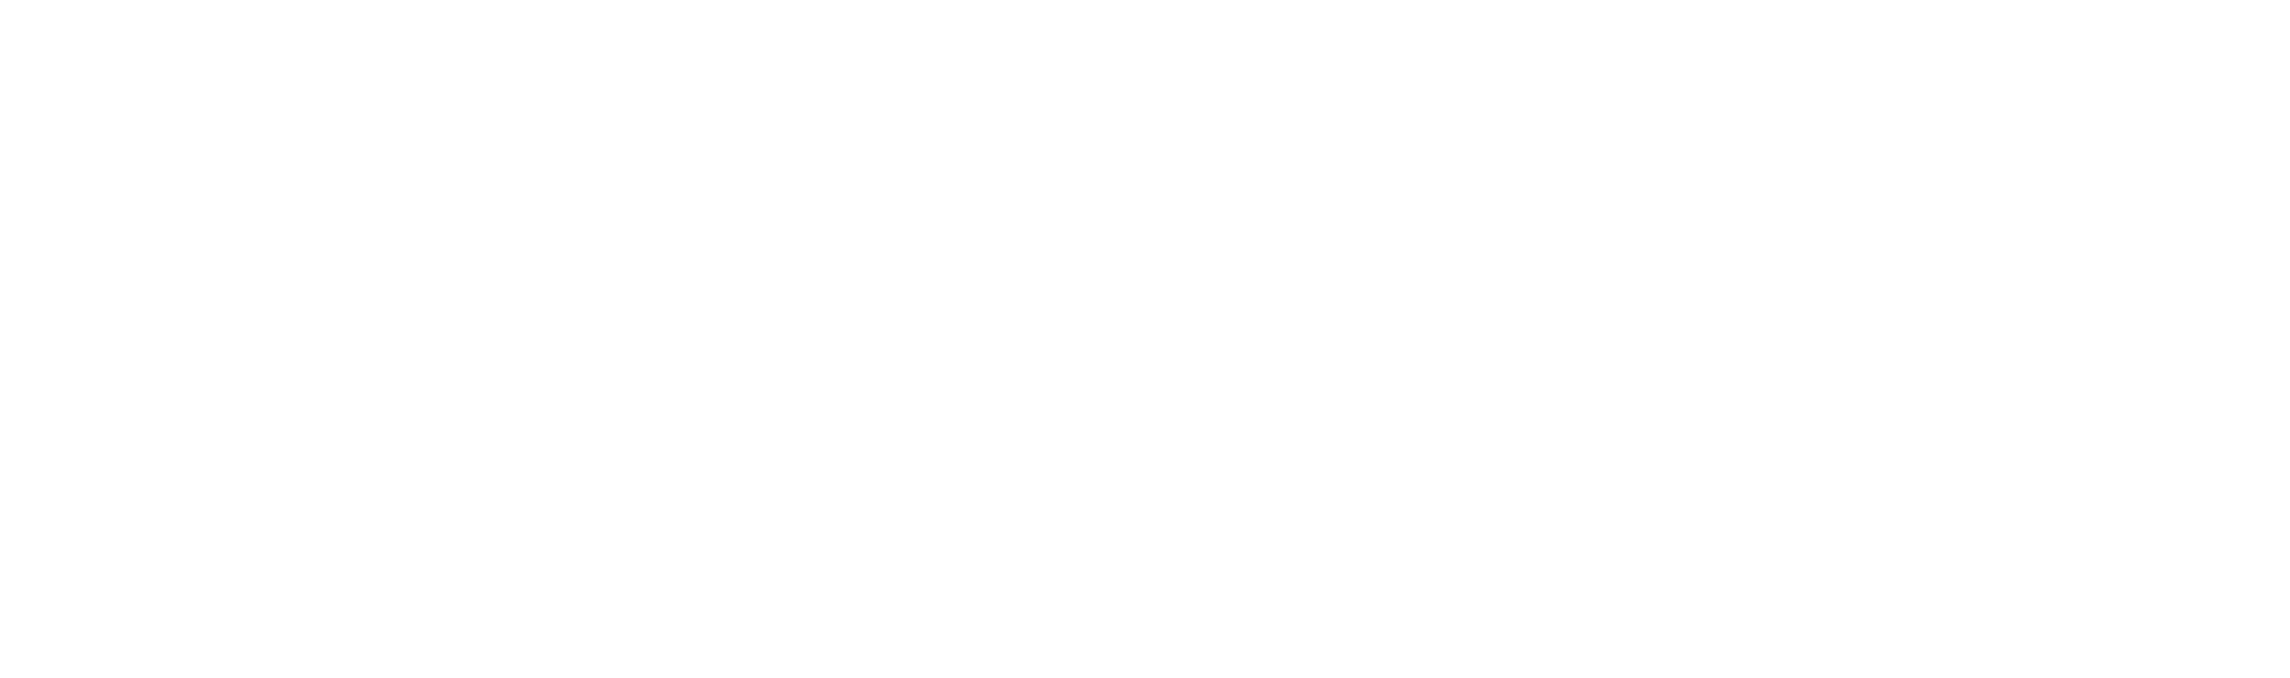 NADYA GROUP LTD.